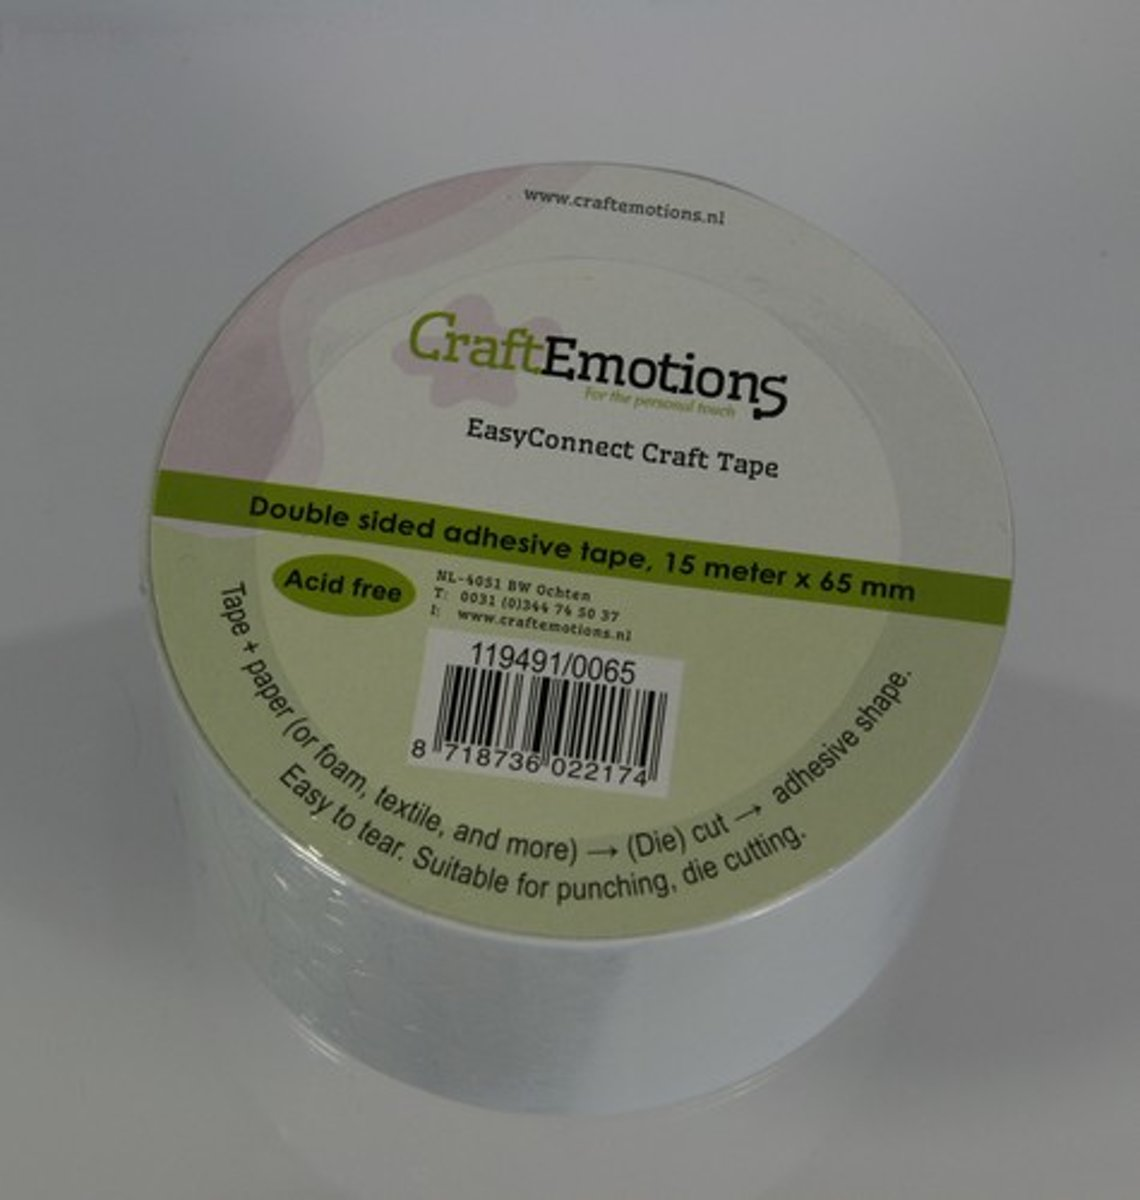 CraftEmotions EasyConnect (dubbelzijdig klevend) Craft tape 15m x 65mm.